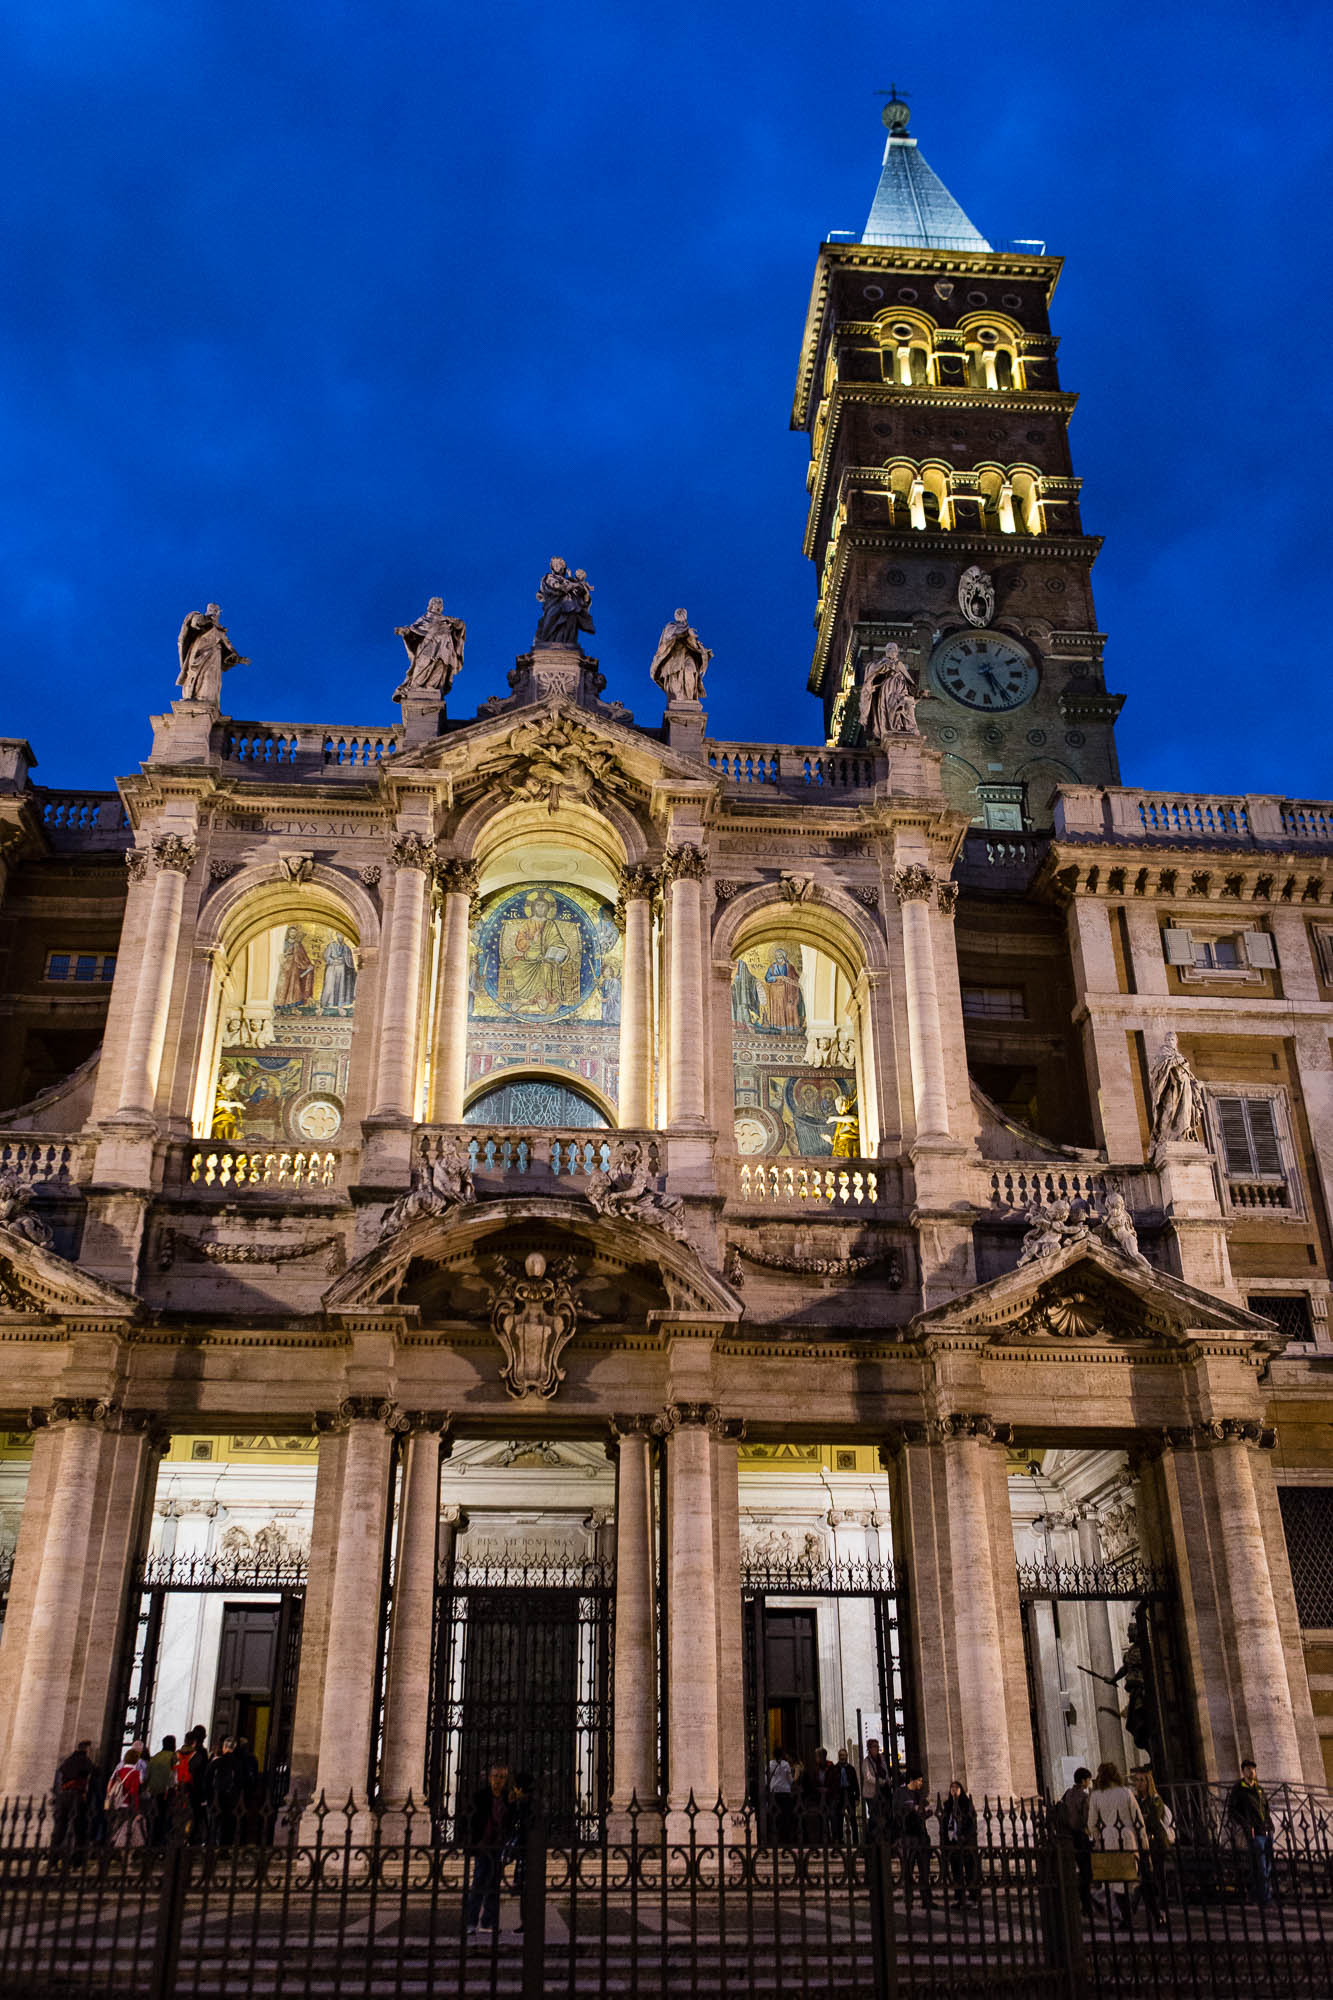 Basilica di Santa Maria Maggiore, taken by Ben Lee, a derbyshire based photographer on his trip to Rome.